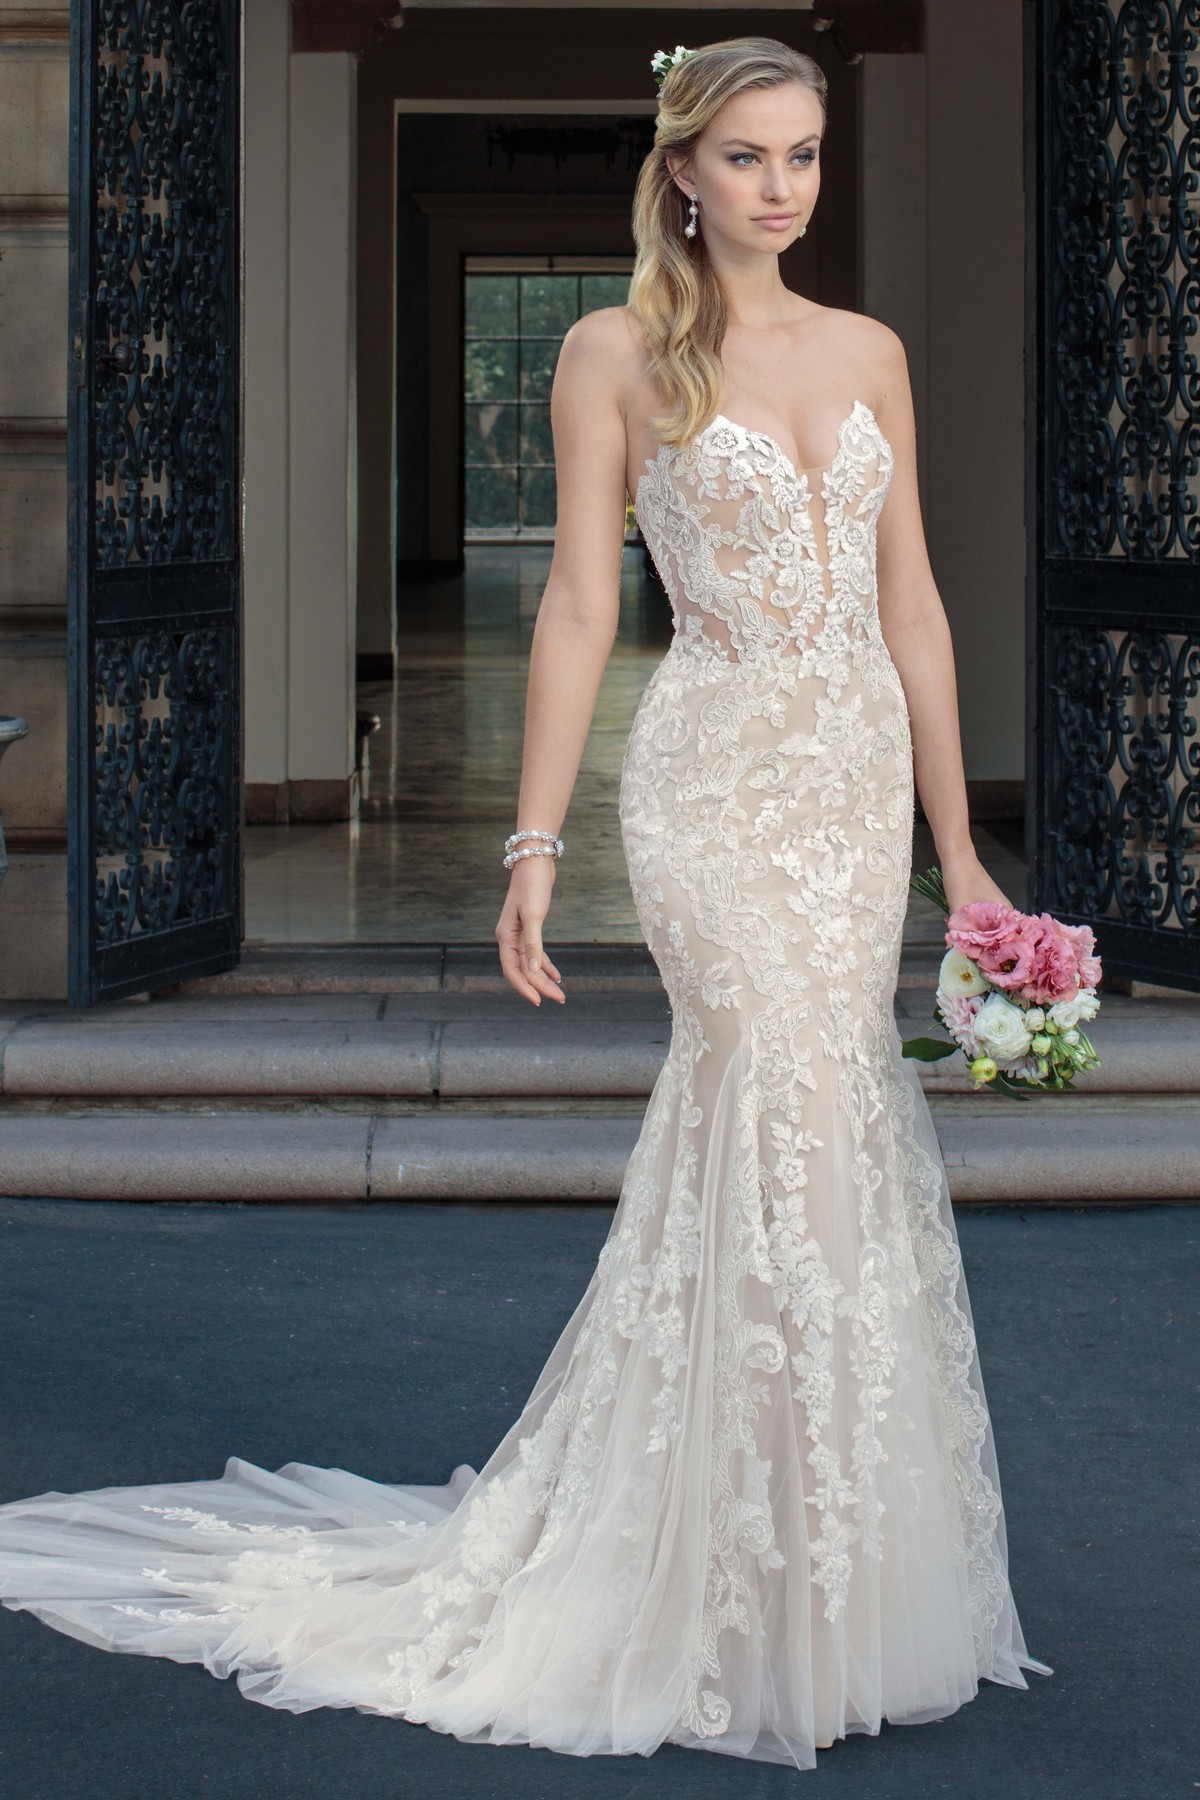 01e226ee0b9e9 Style 2325 Maisie by Casablanca Bridal - Find Your Dream Dress